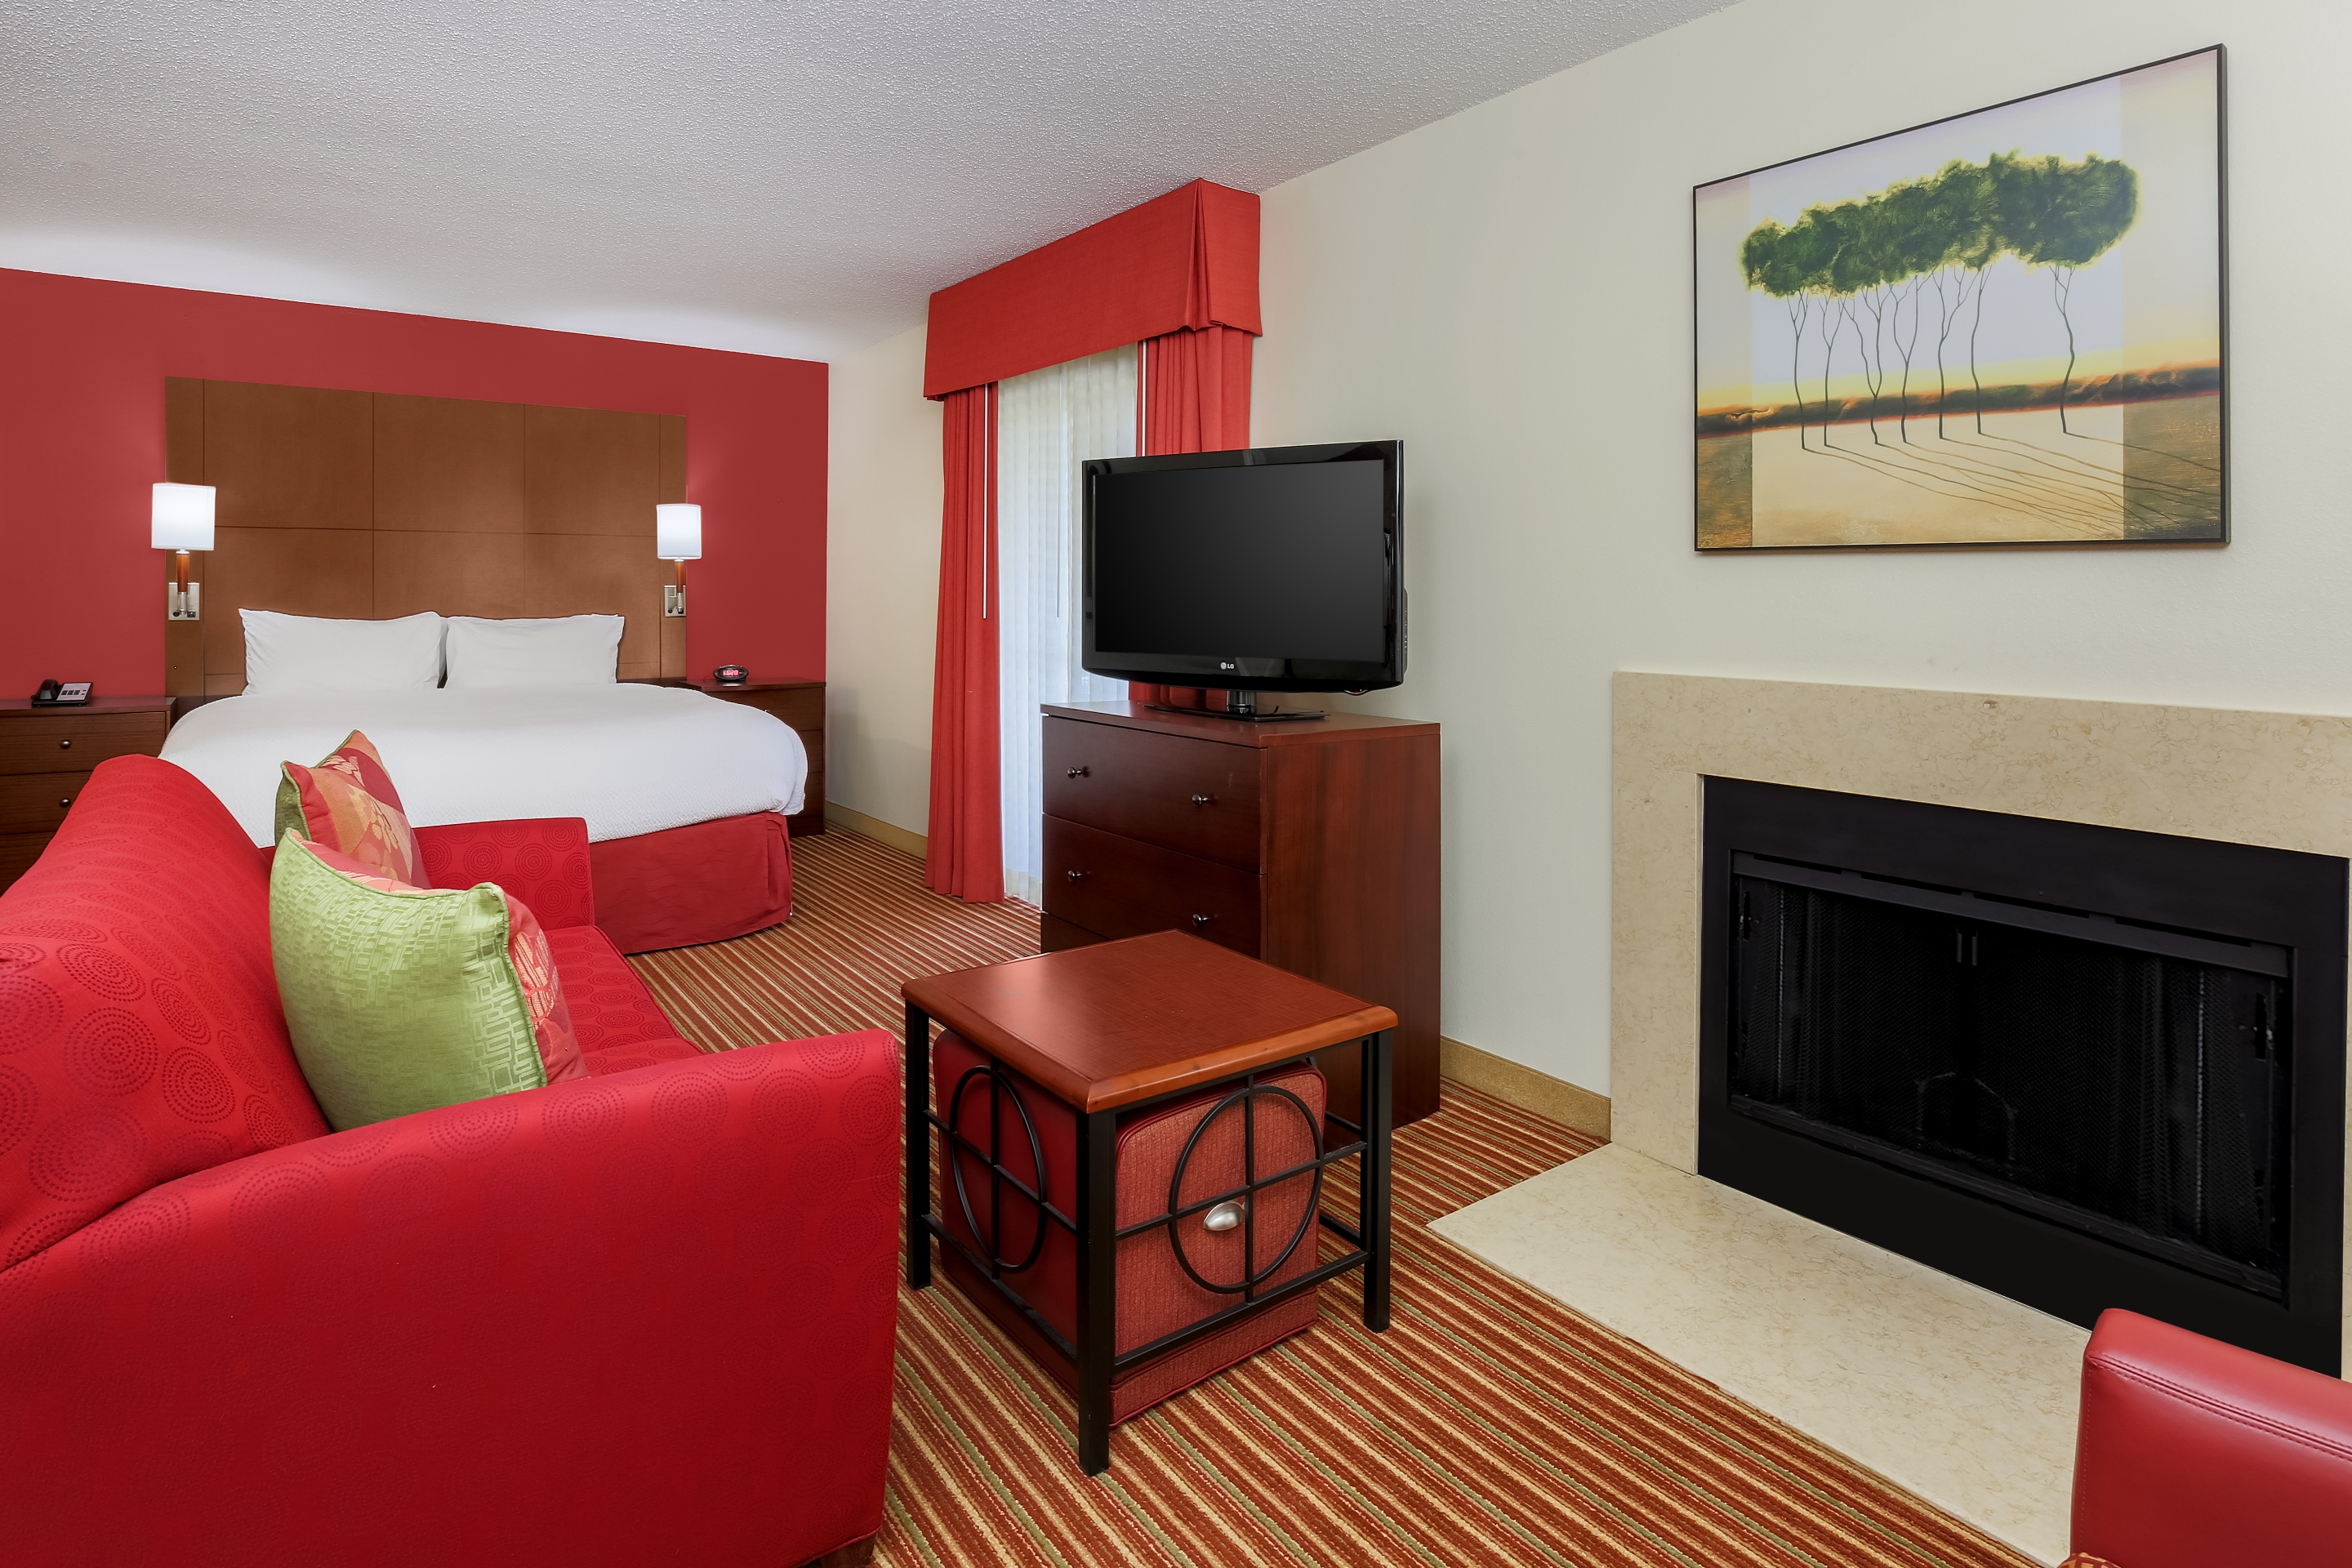 Residence Inn by Marriott St. Louis Galleria image 1